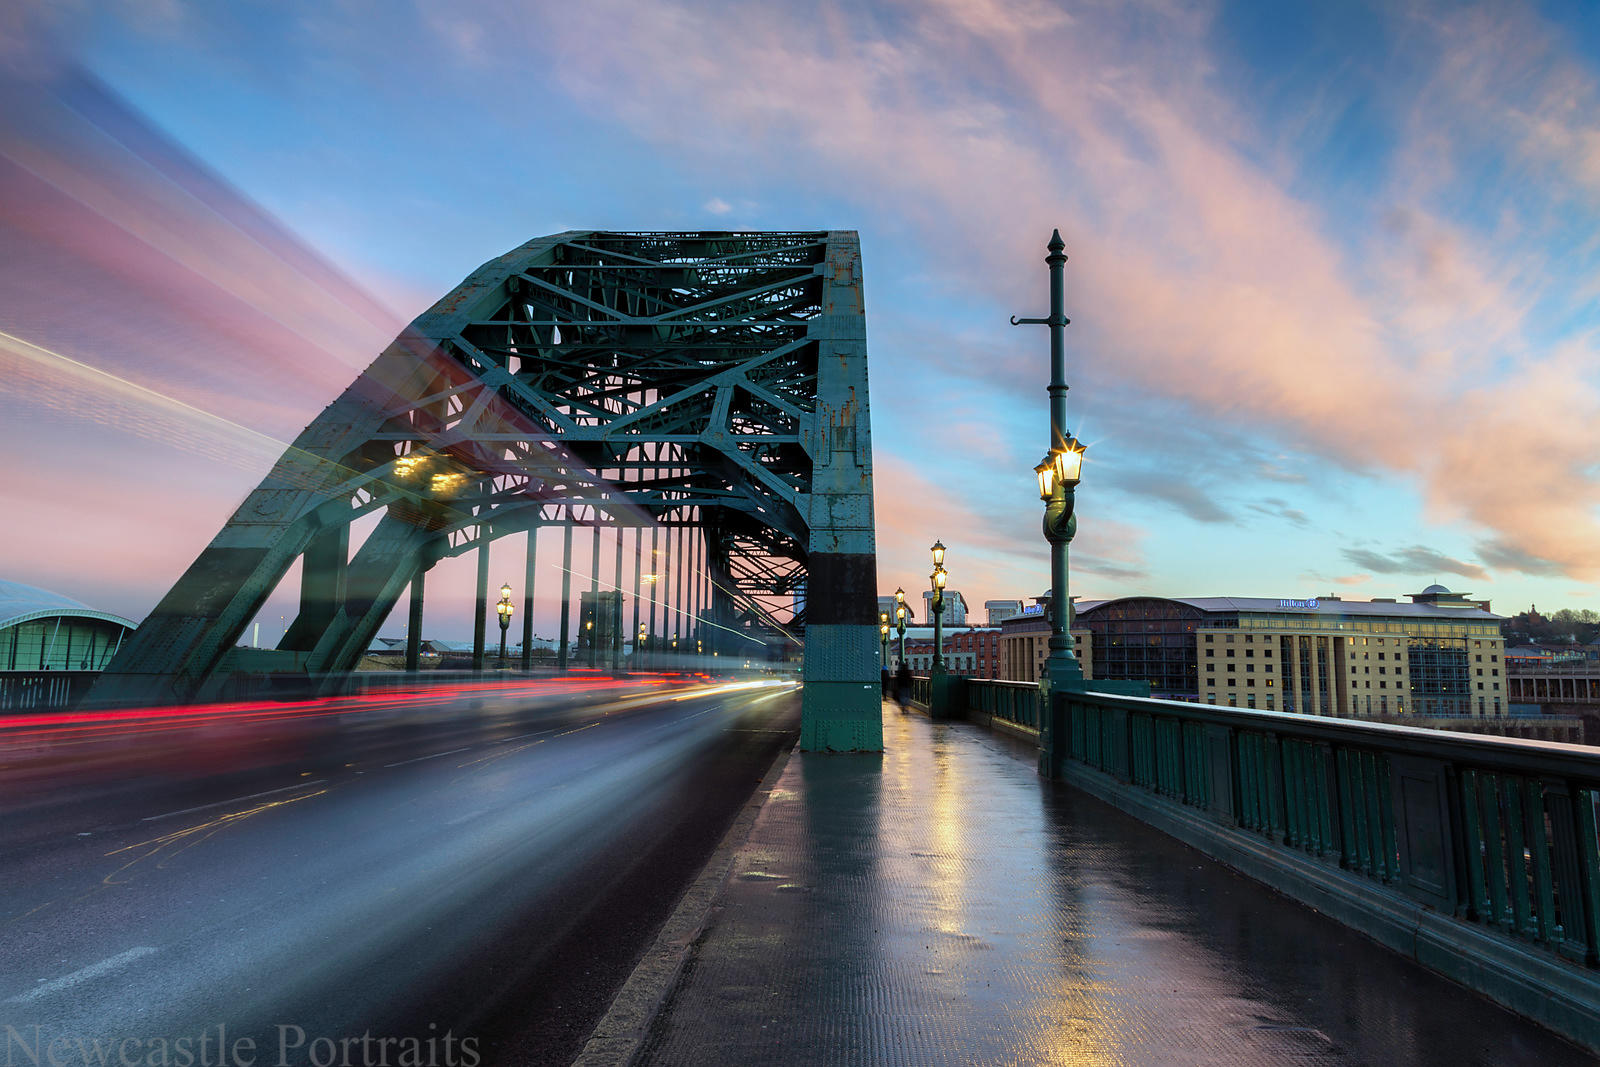 Sunset on the Tyne Bridge